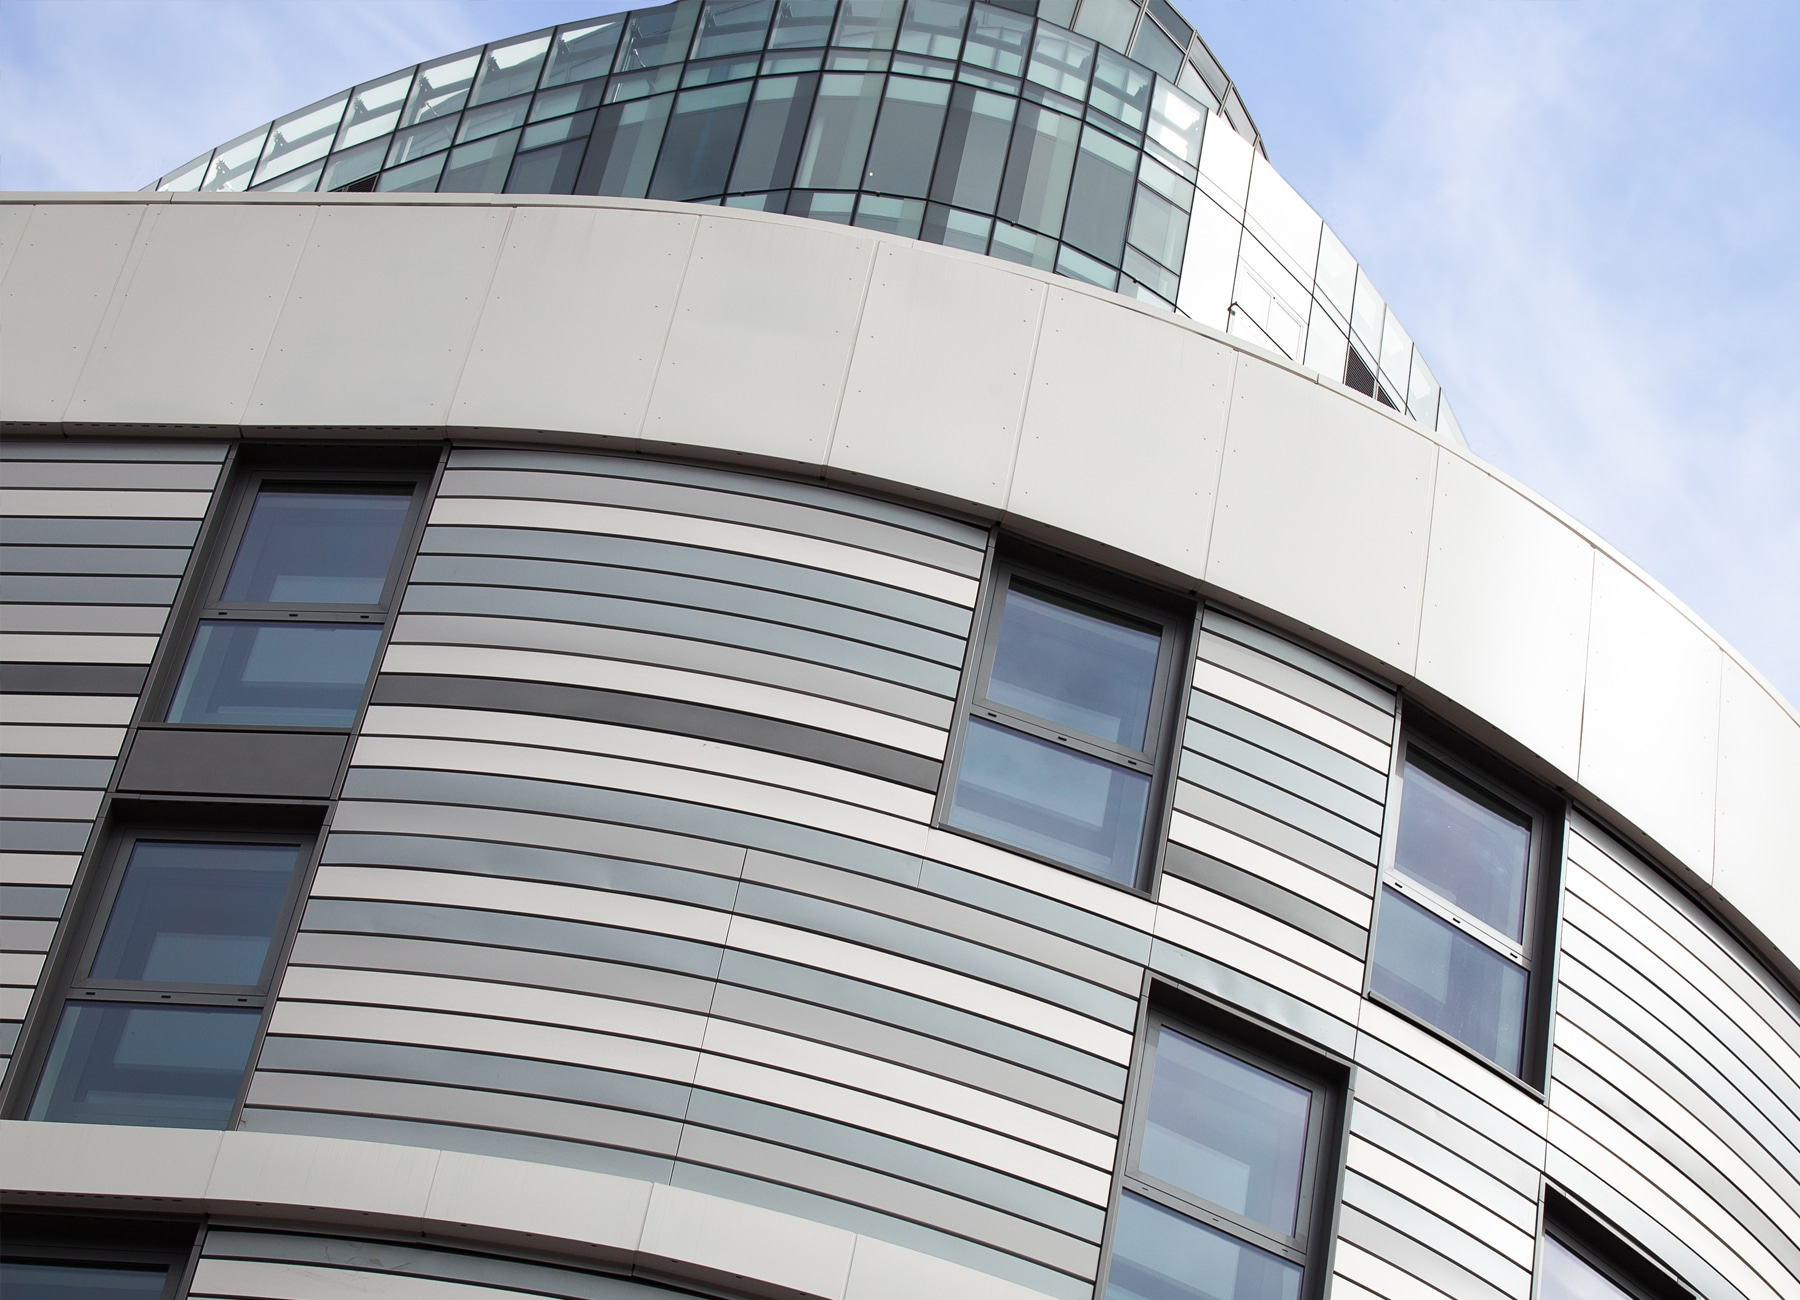 rainscreen cladding u2013 not just for a rainy day sotech optima